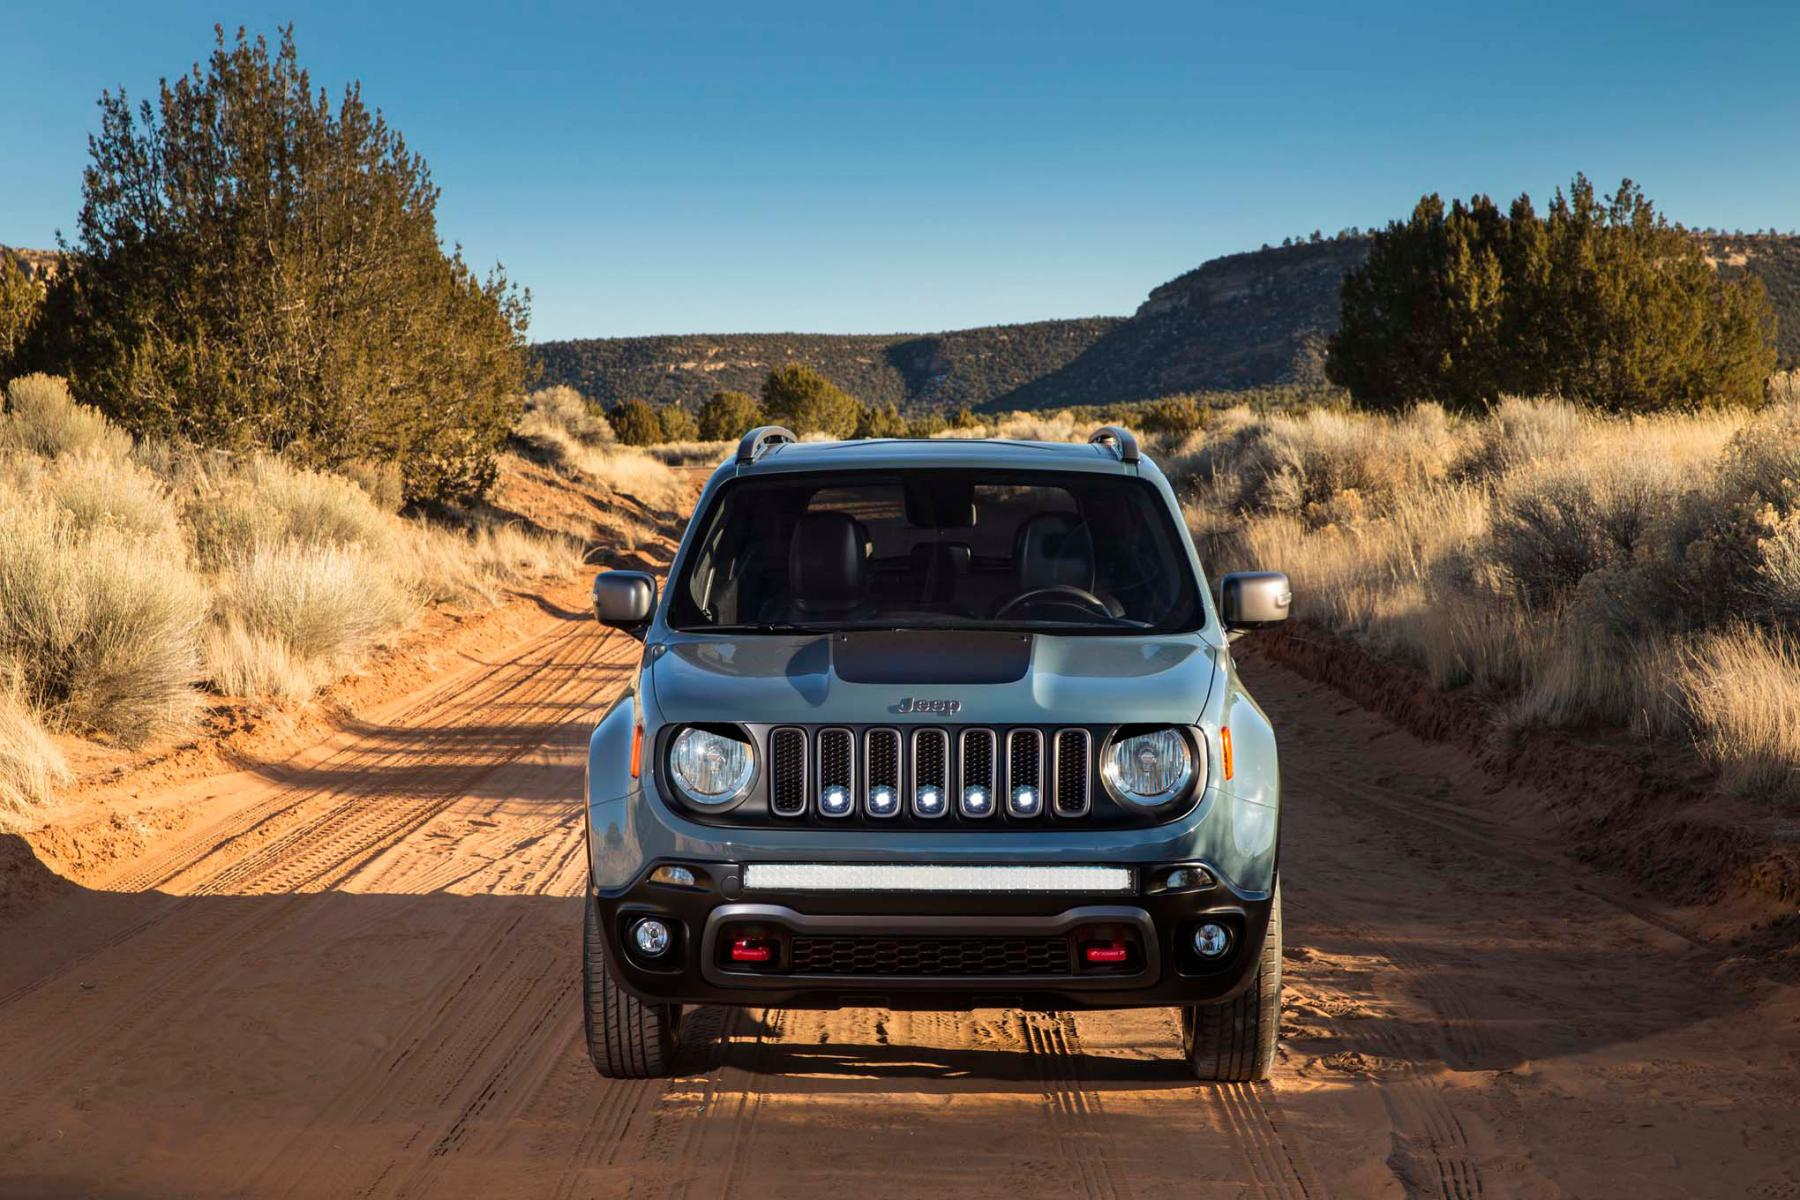 Light Bars And Such Photoshop Mockup I Made Jeep Renegade Forum